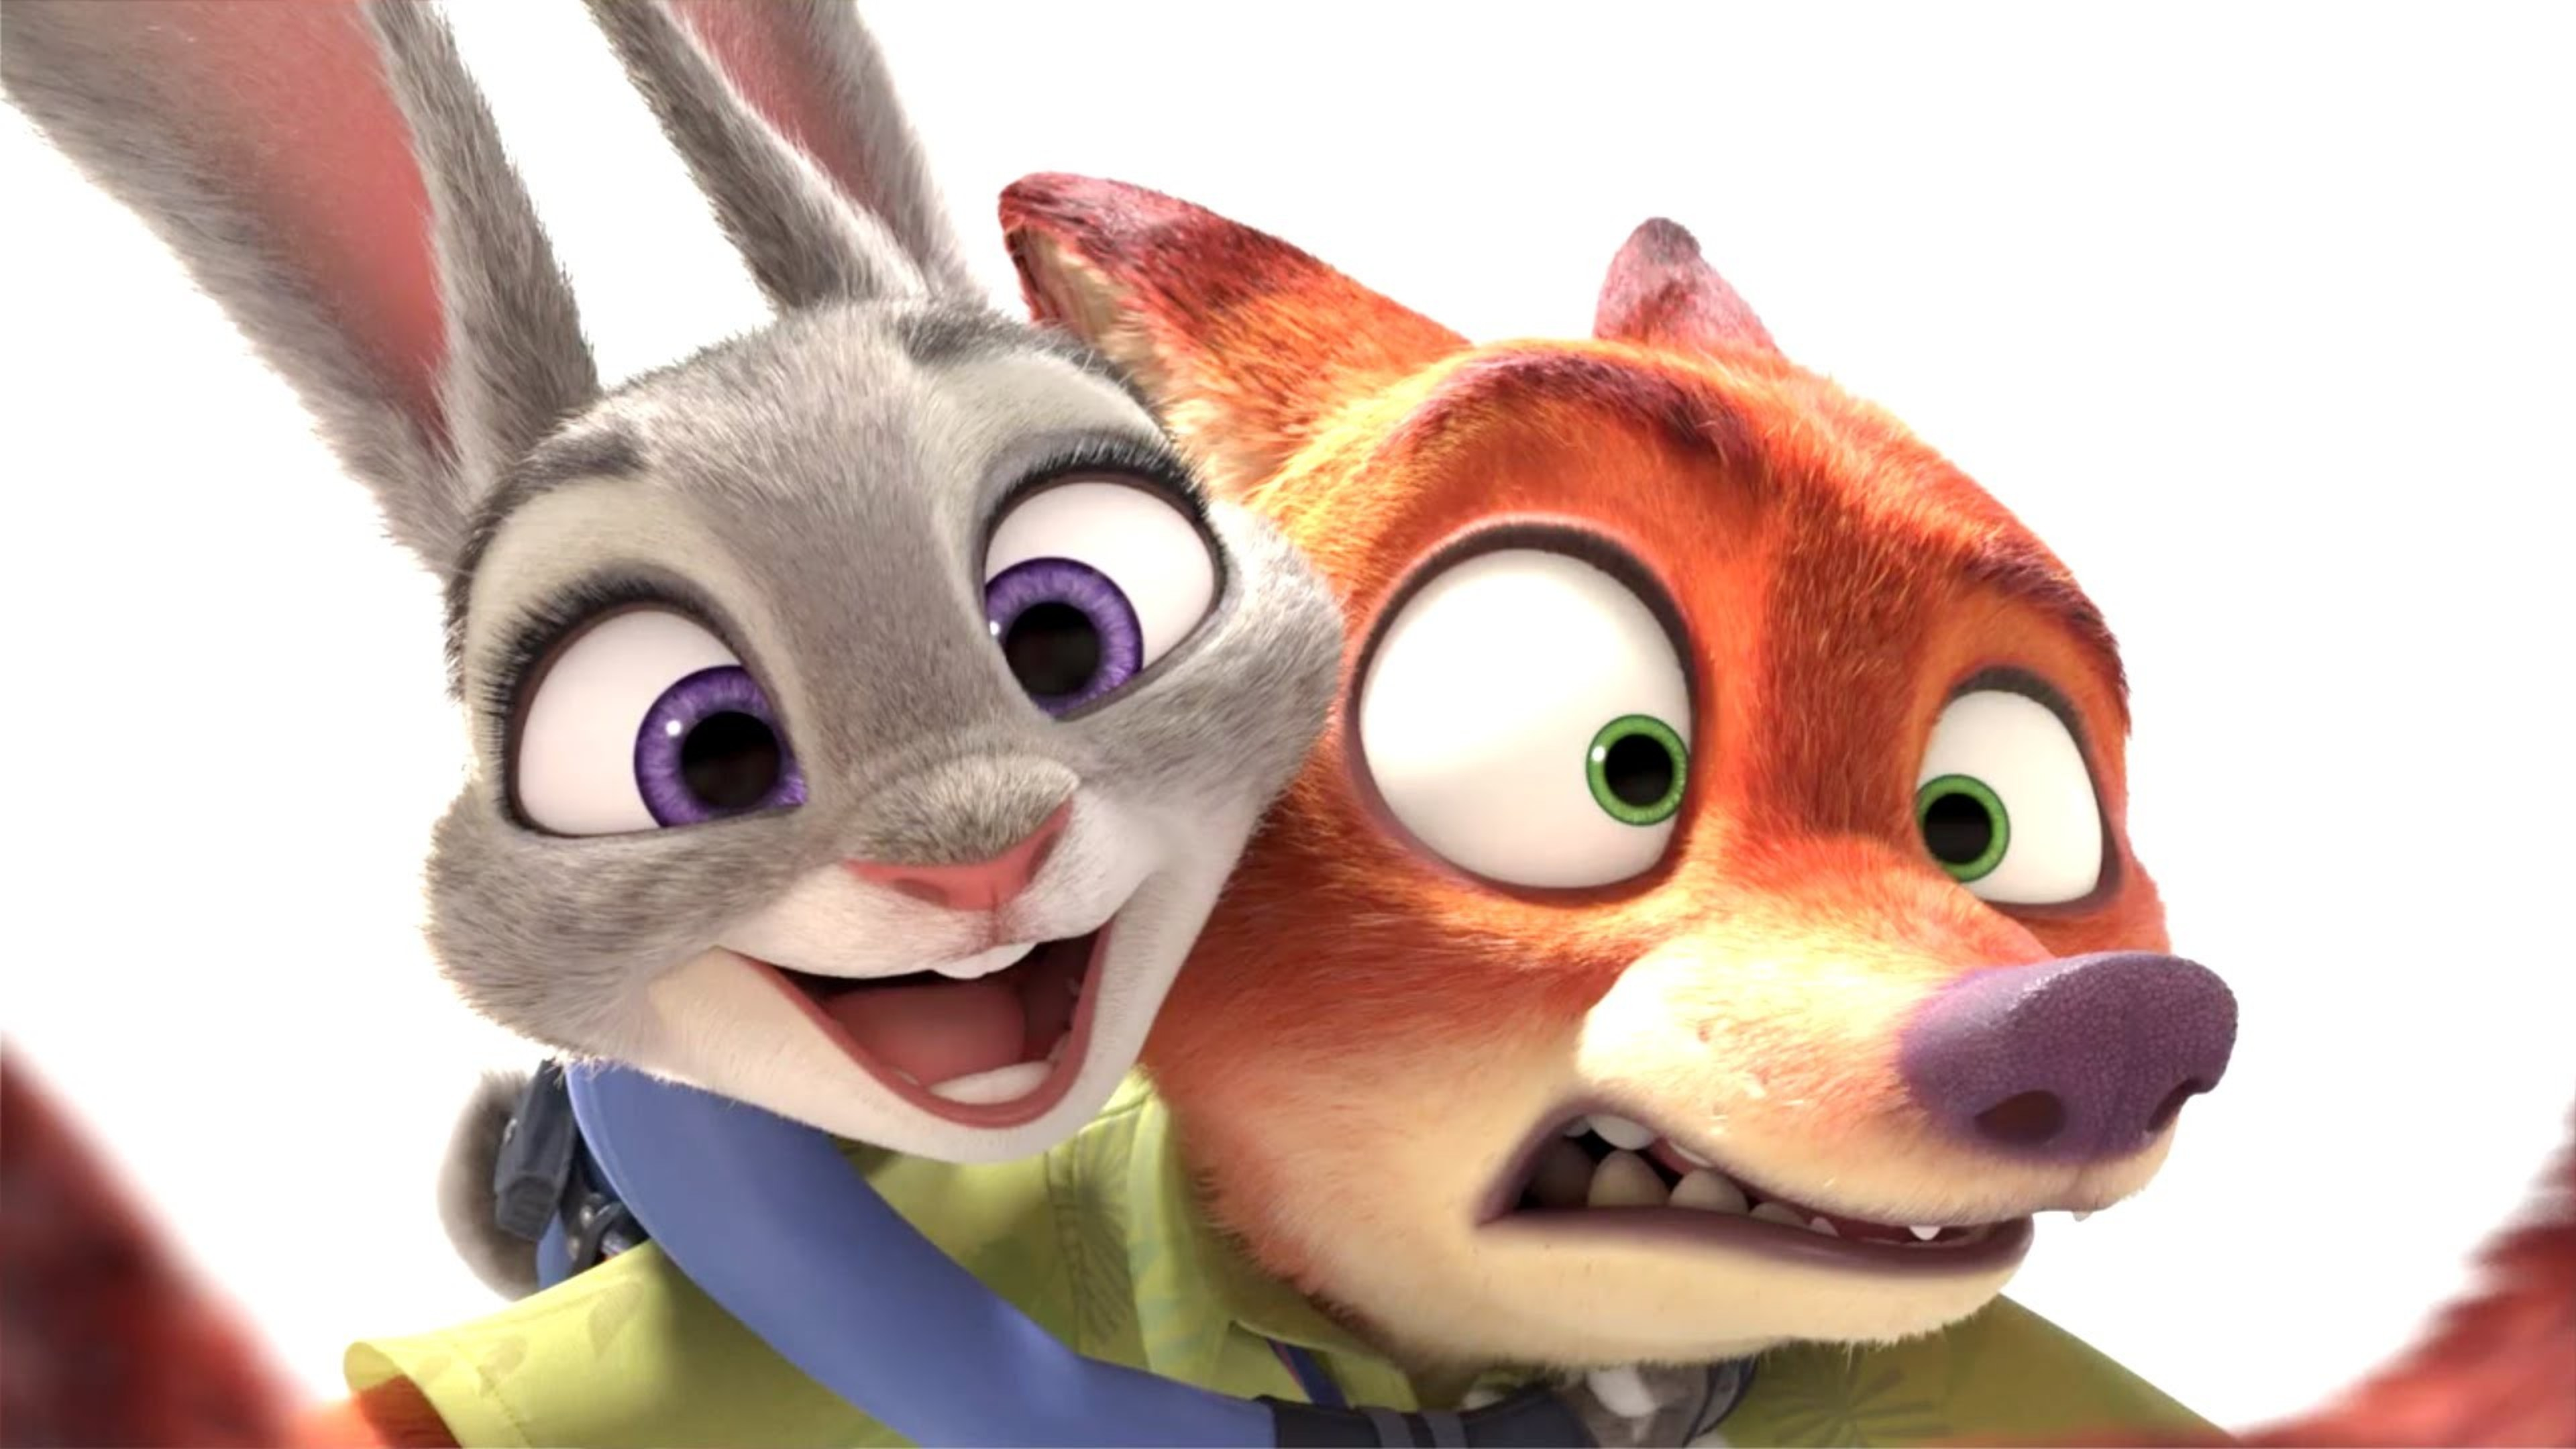 320x480 Animated Wallpapers Zootopia 1080p Hd Movies 4k Wallpapers Images